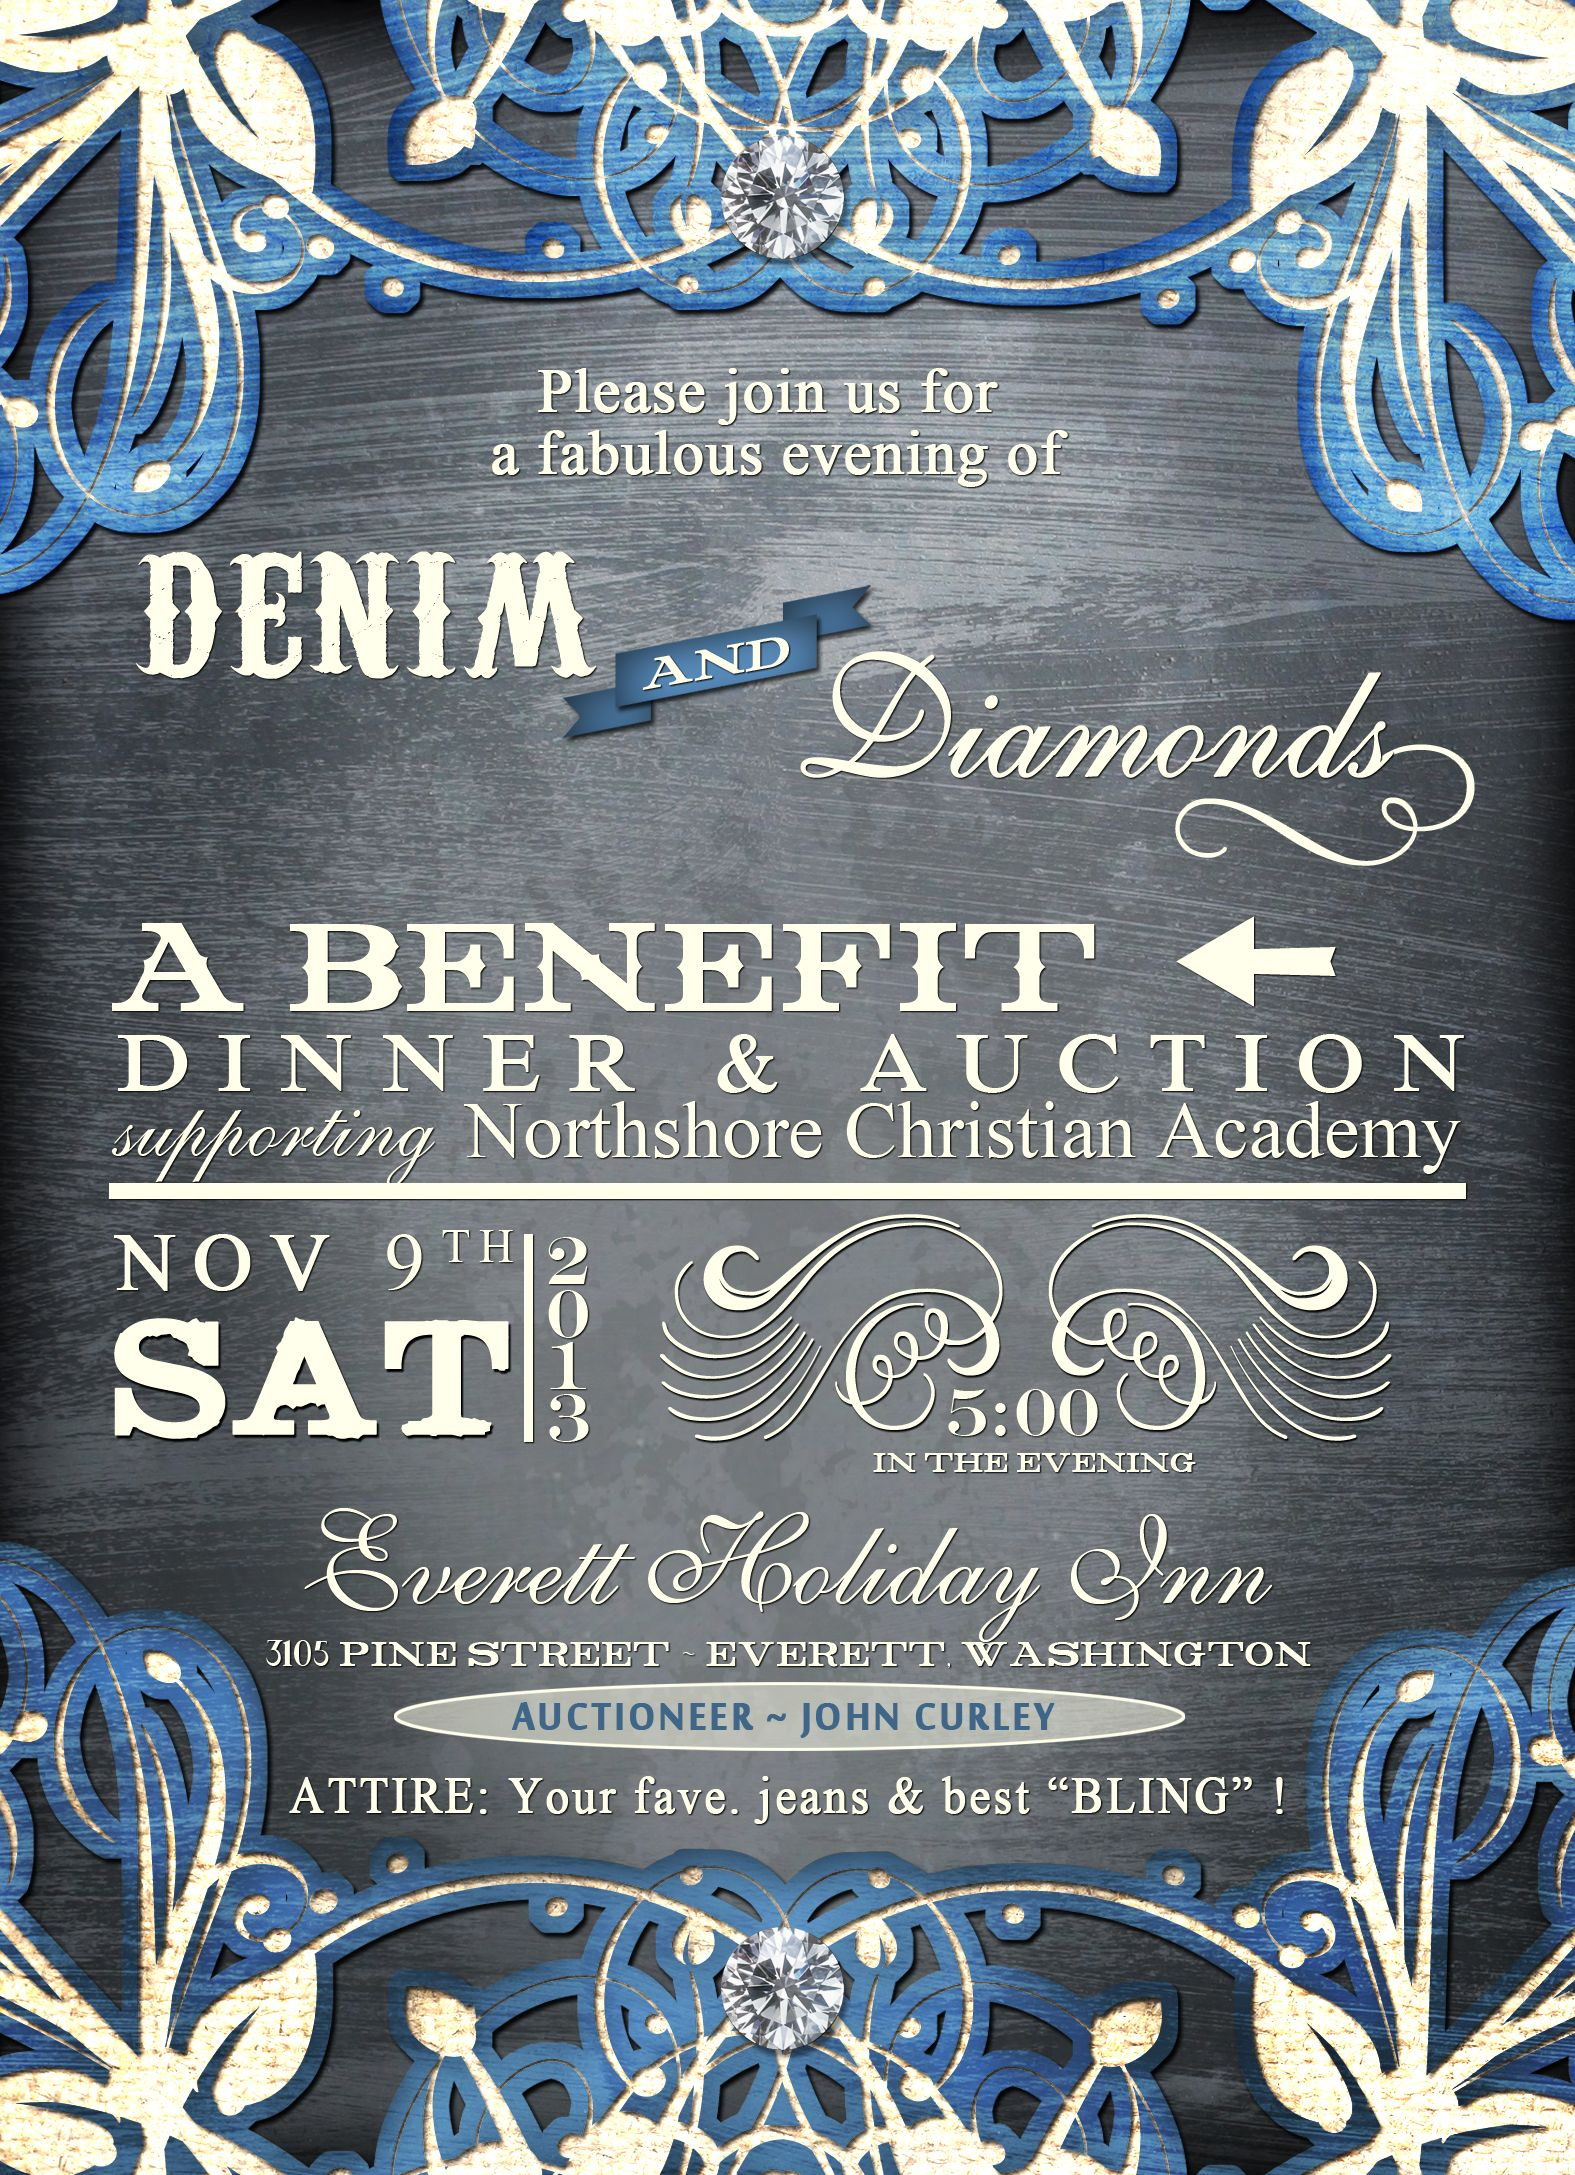 Invitation Wedding Dress Code Denim And Diamonds | Mccs Auction Ideas | Denim, Diamonds